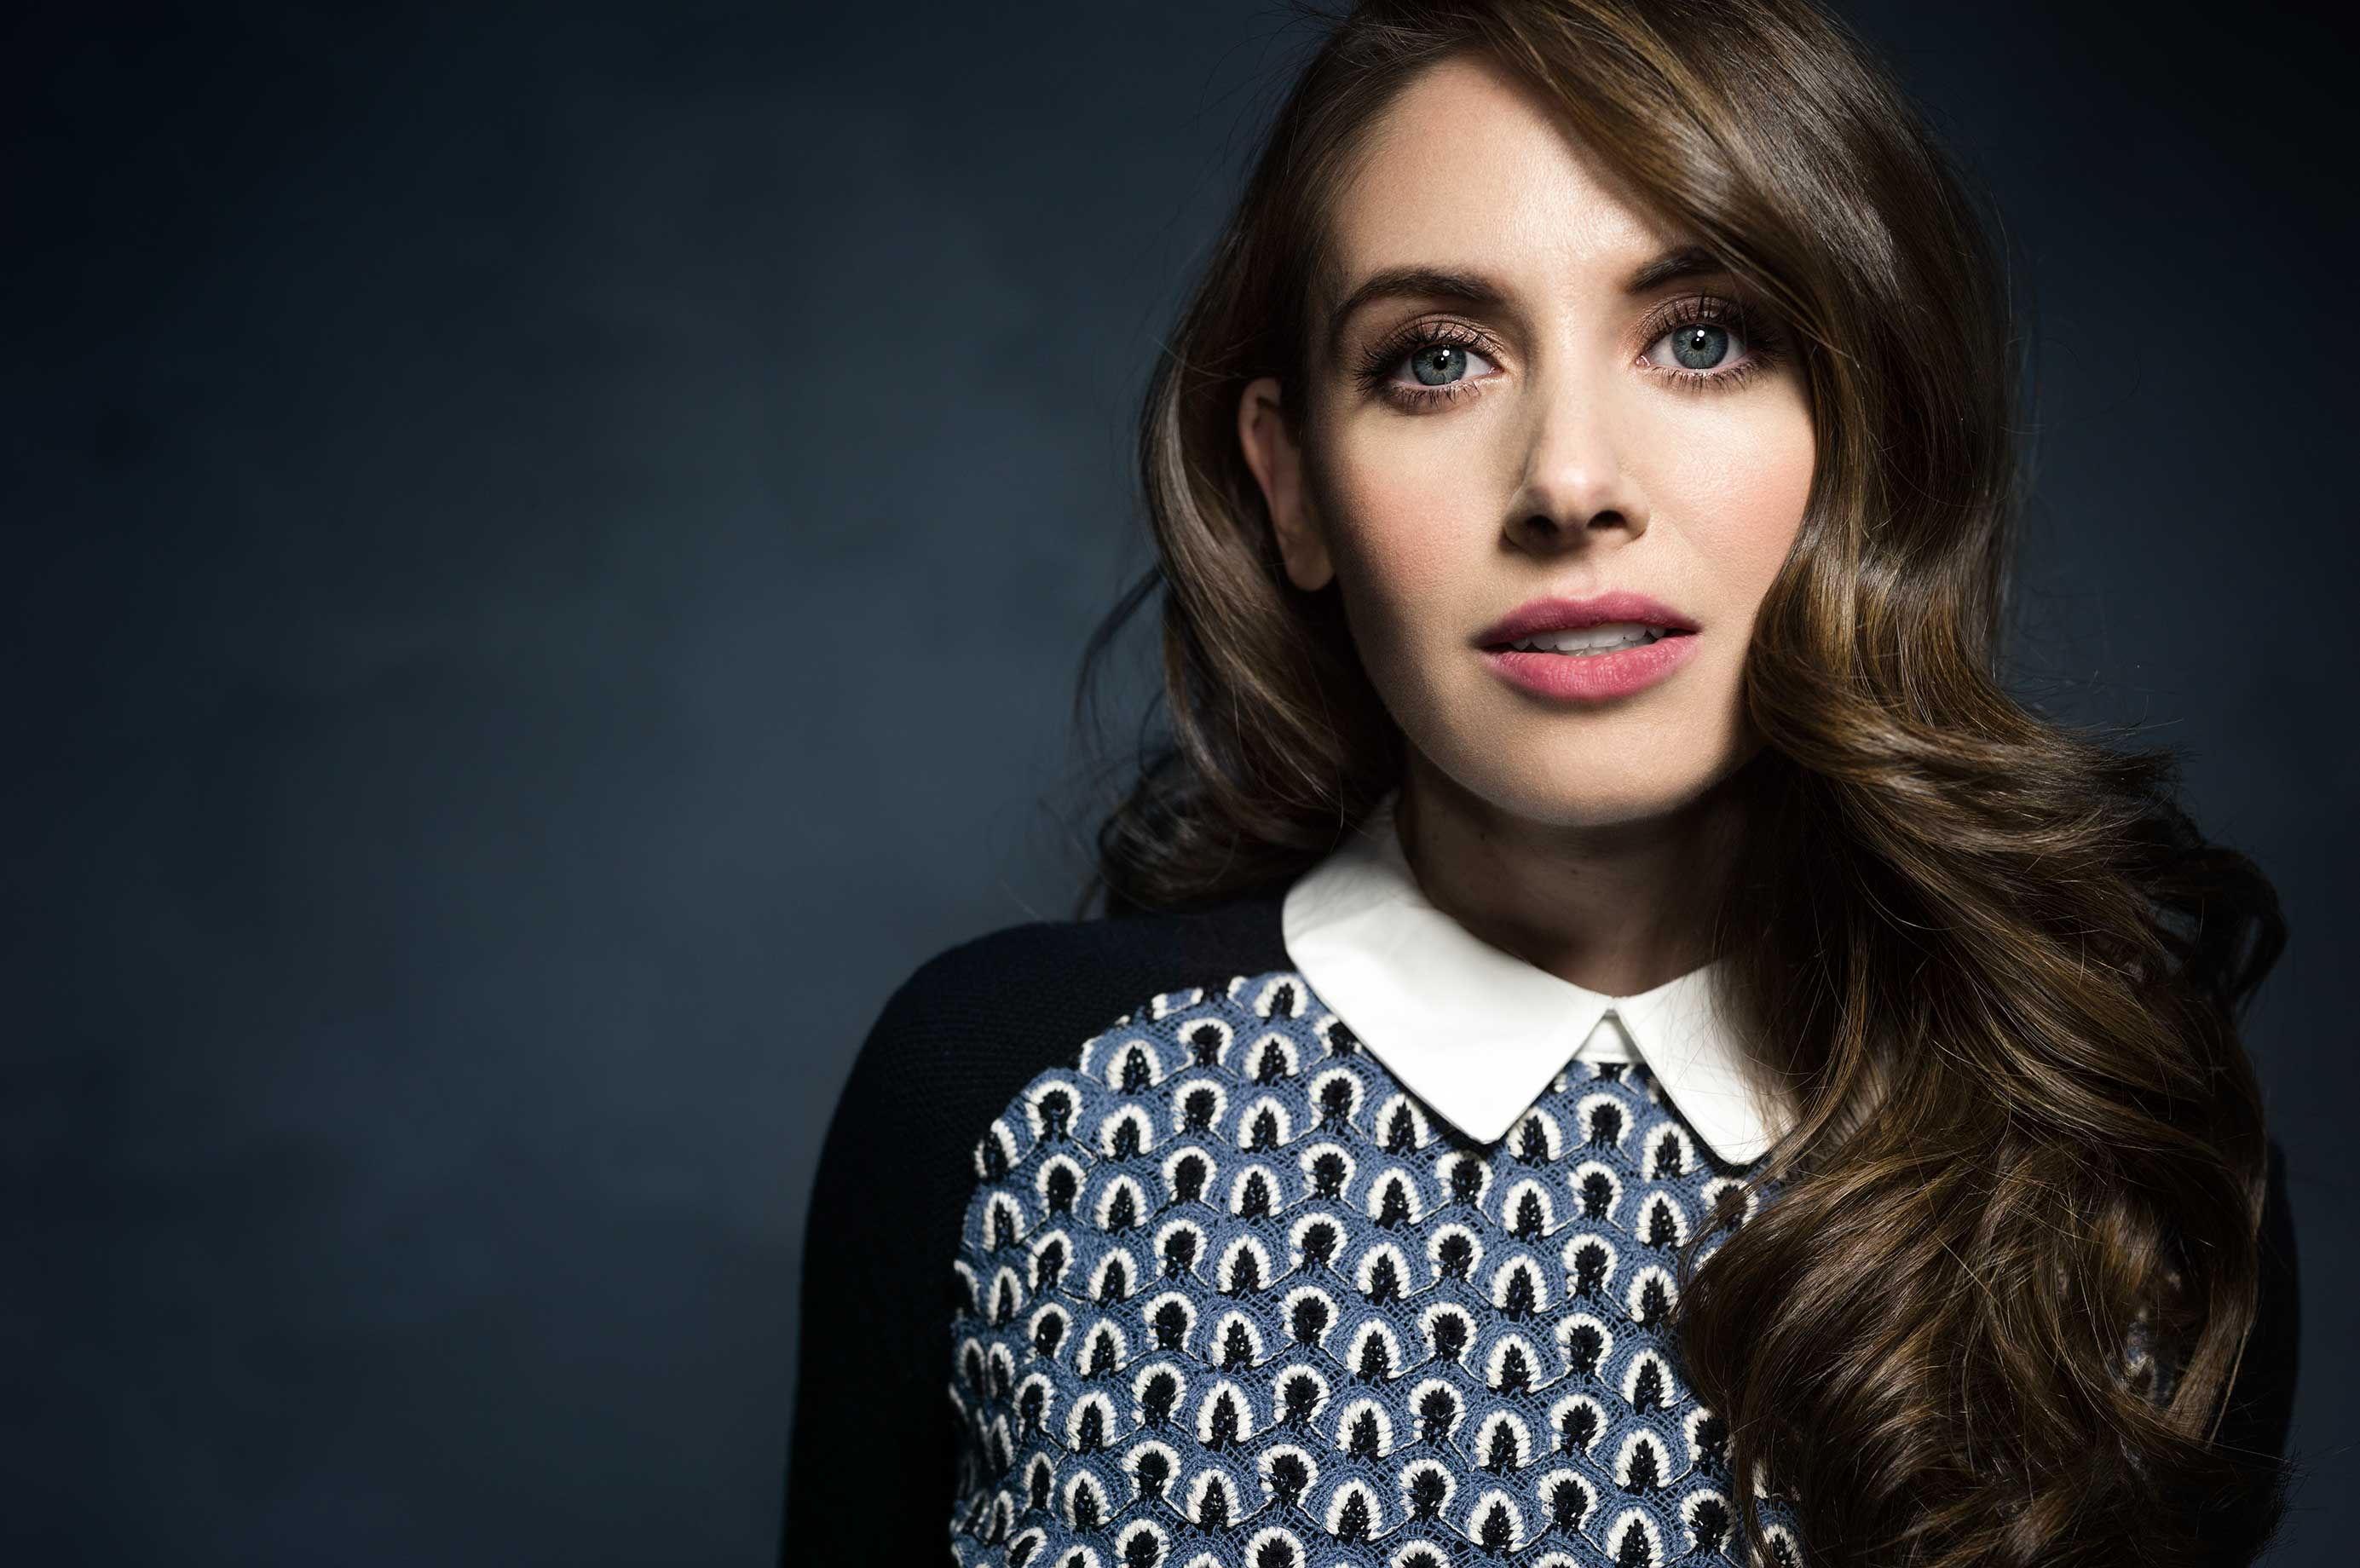 2769x1840 - Alison Brie Wallpapers 9